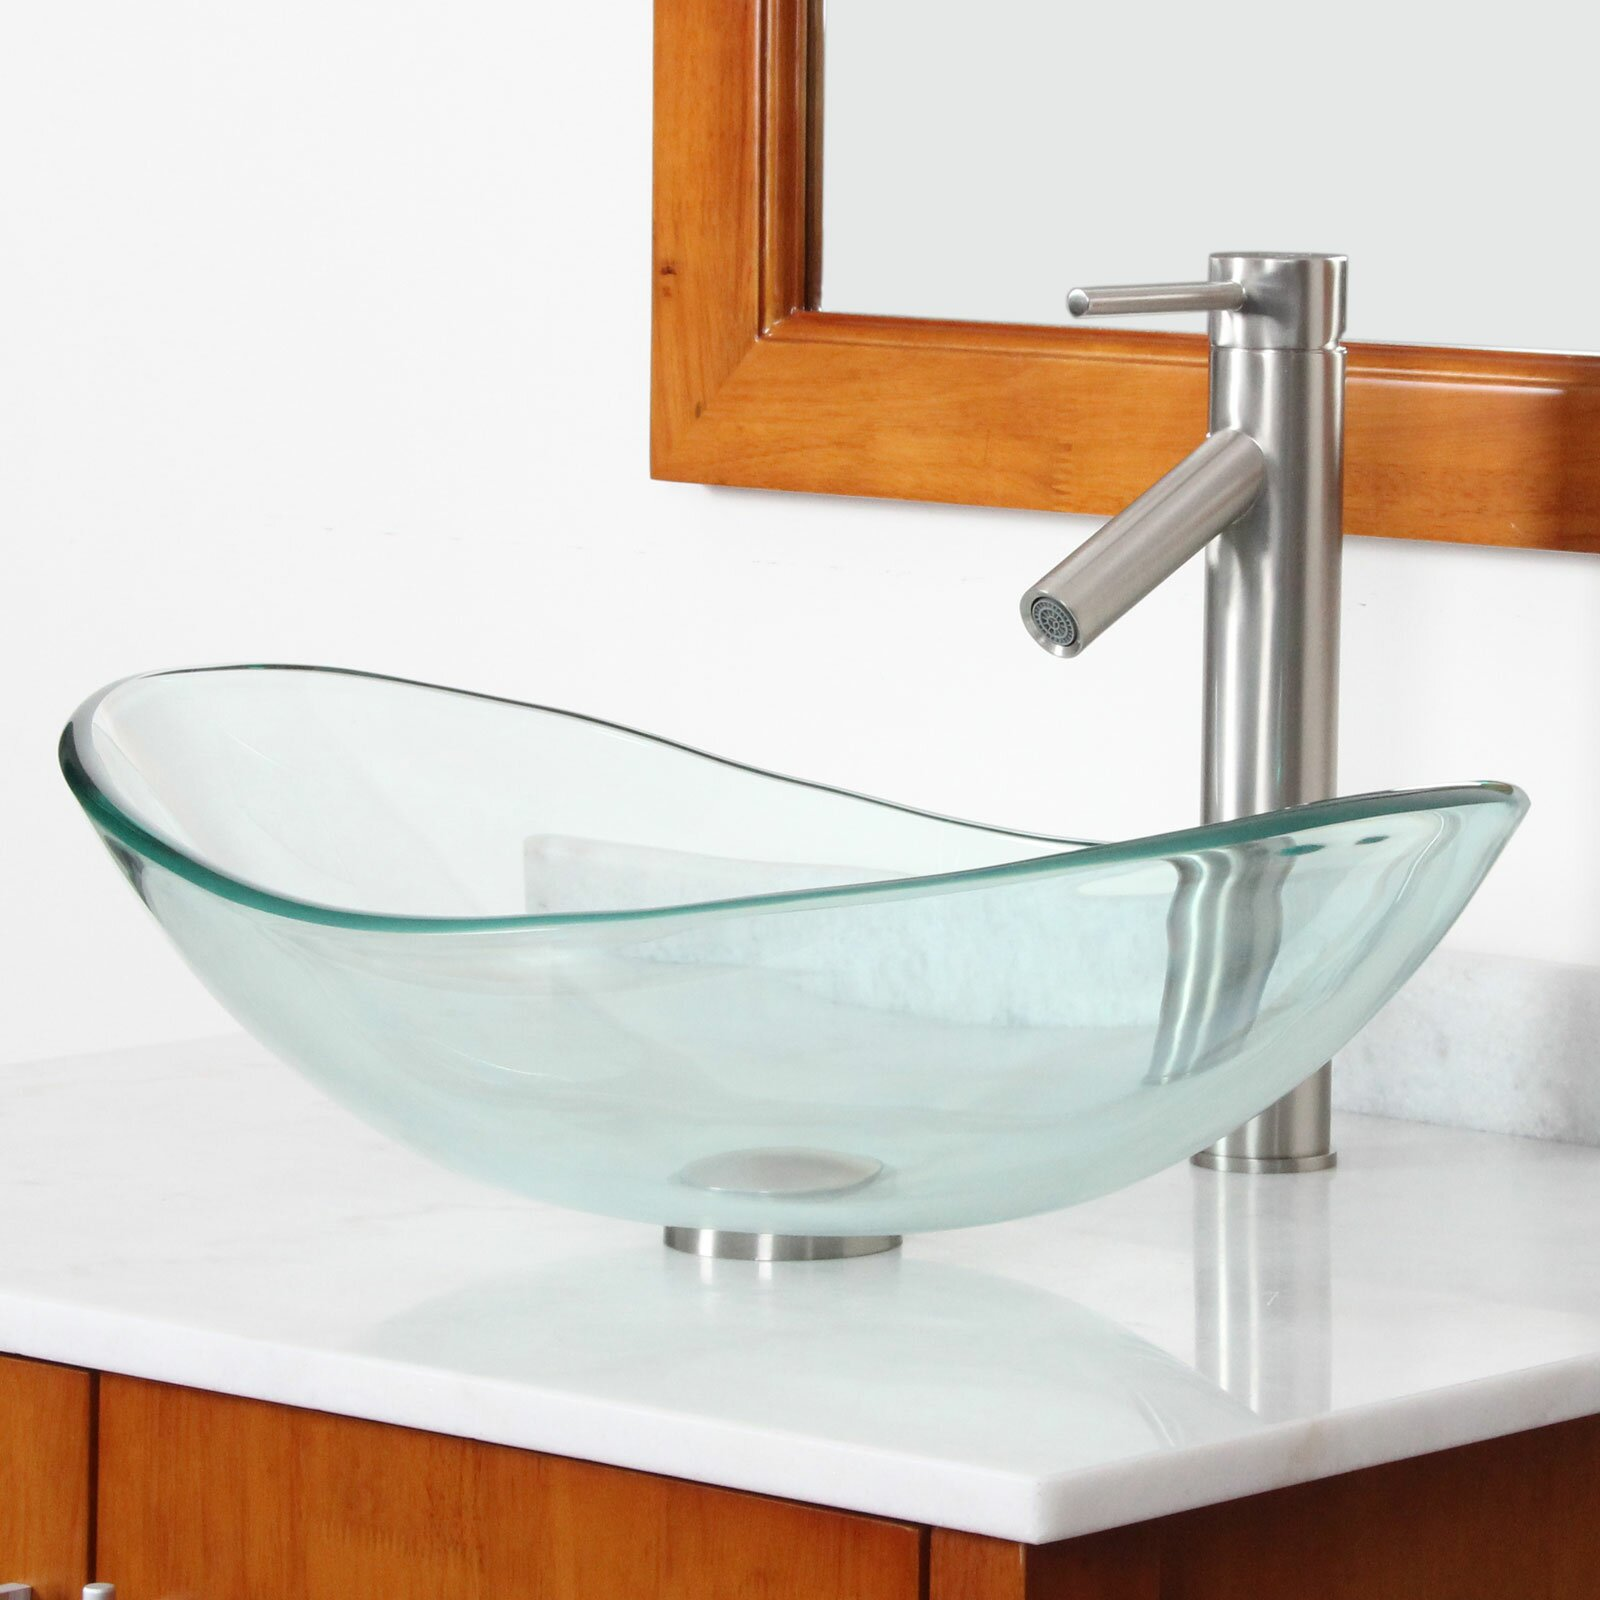 ... Glass Boat Shaped Bowl Vessel Bathroom Sink & Reviews Wayfair